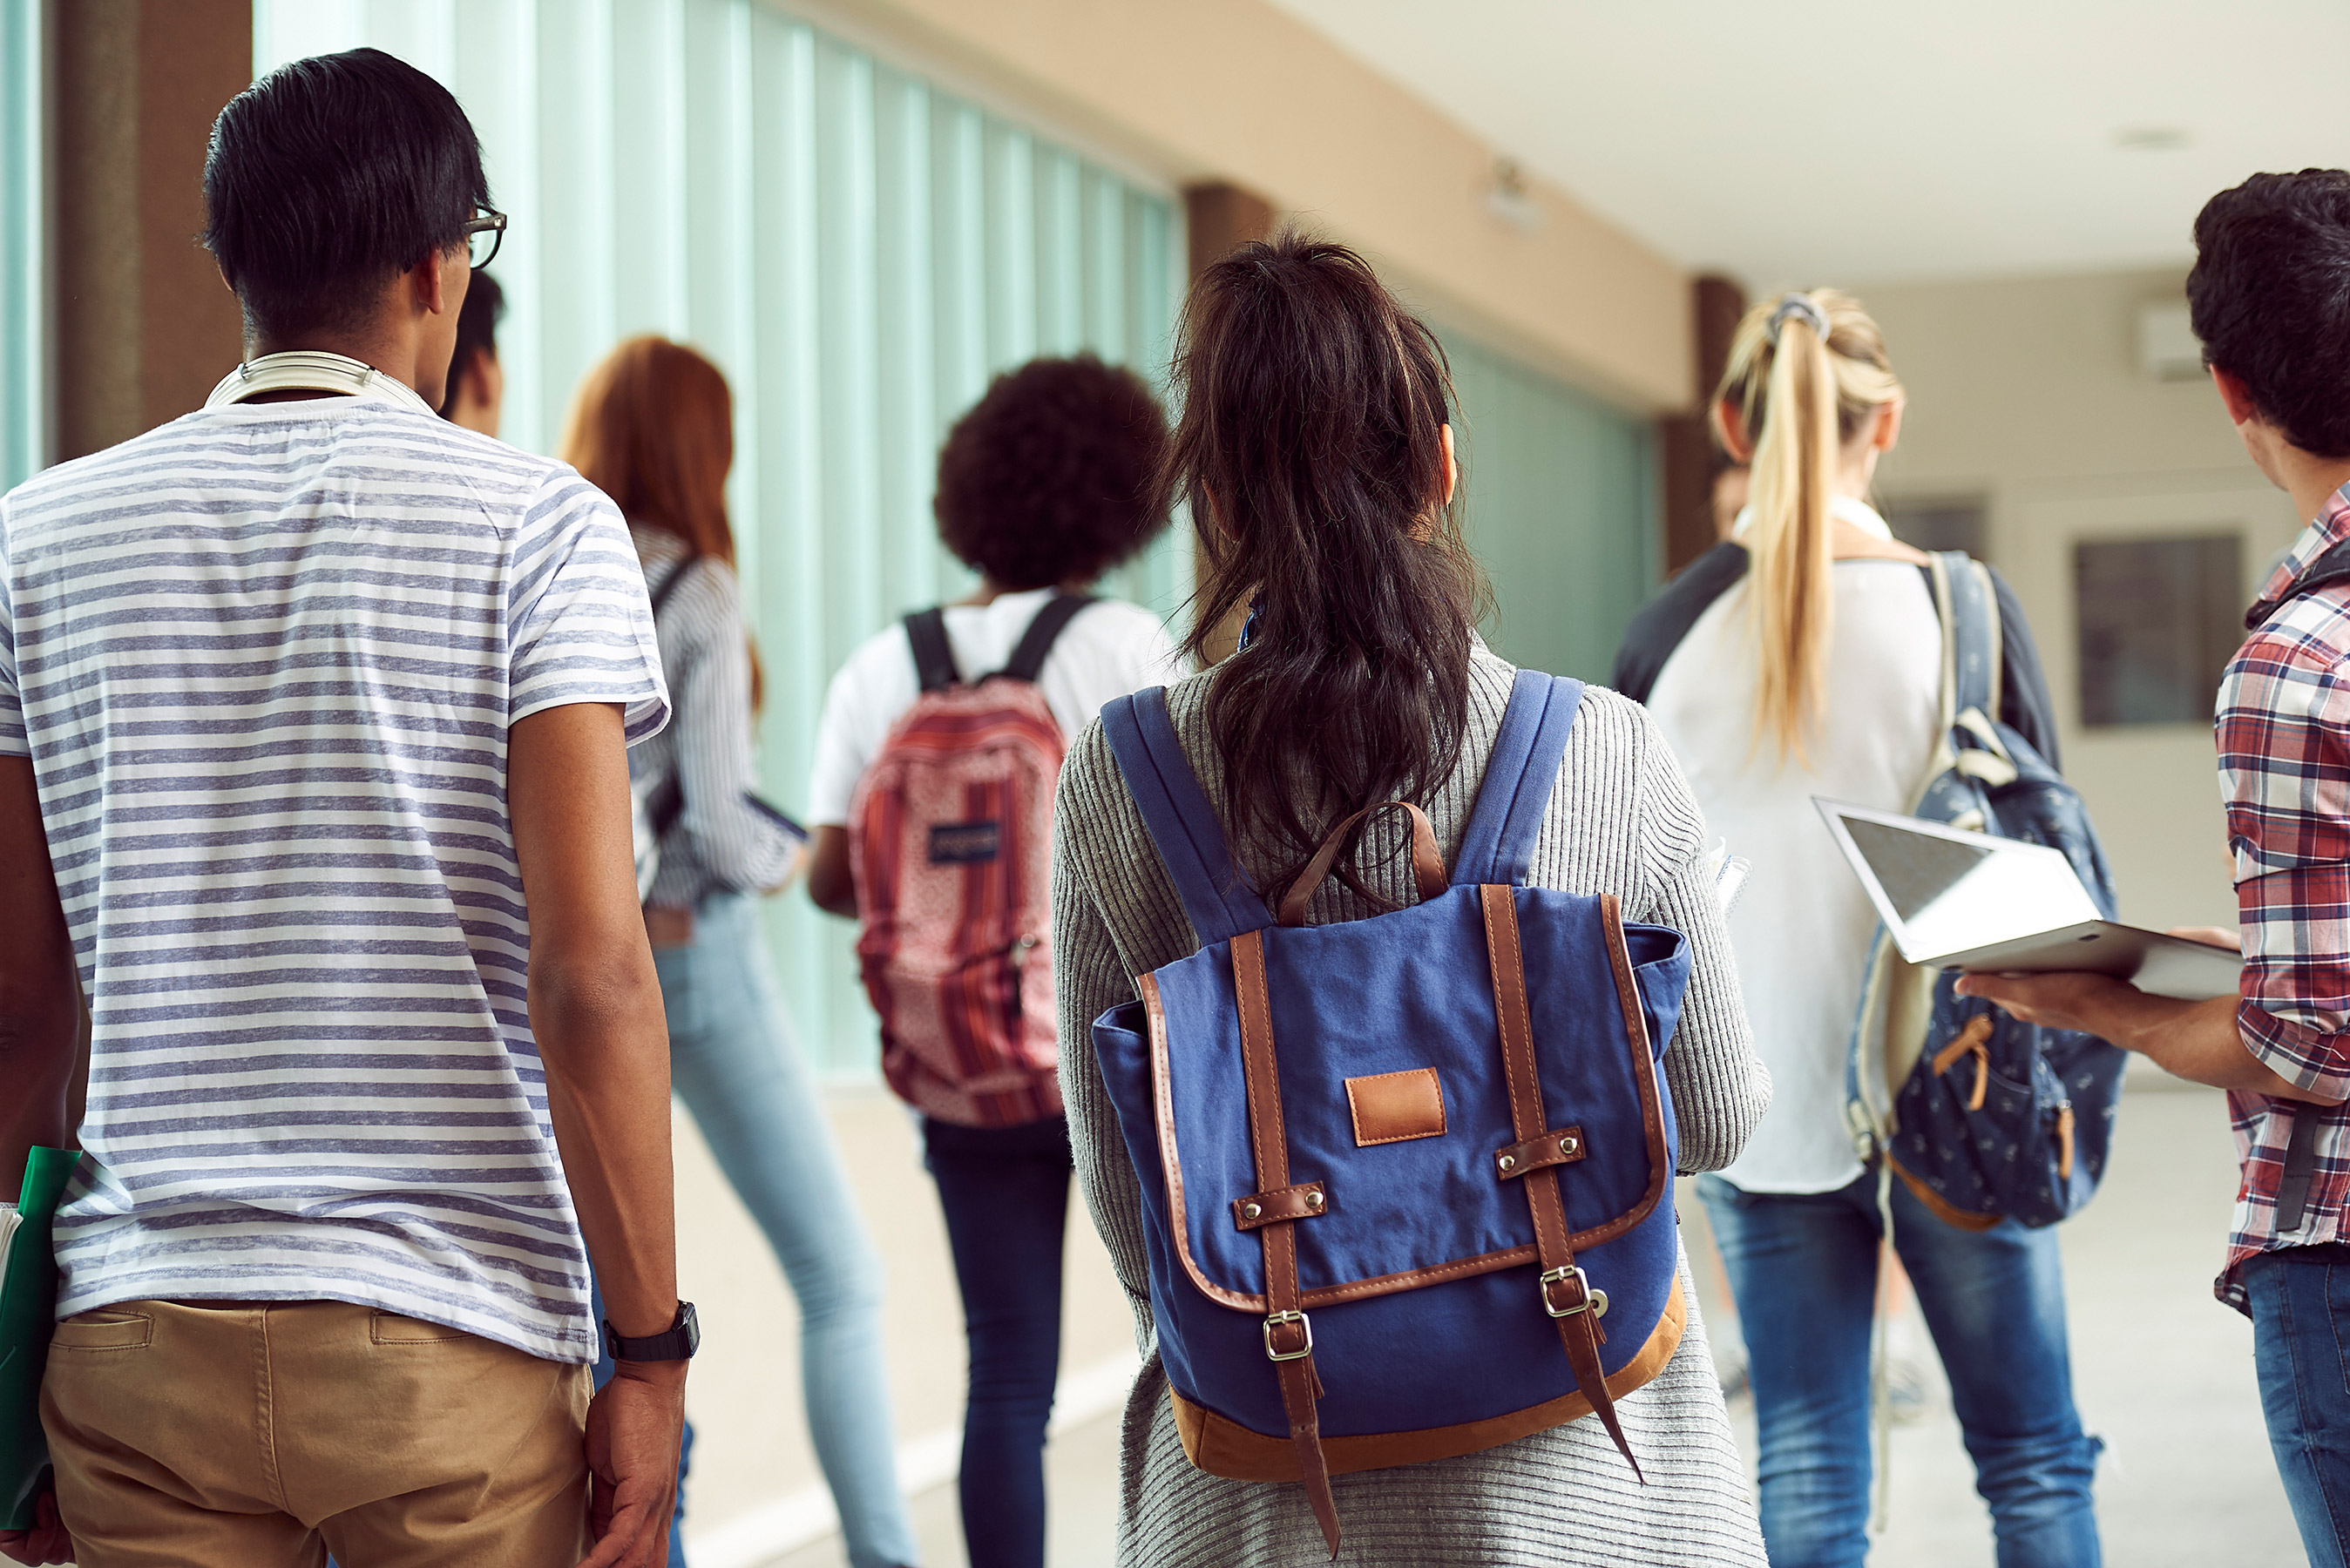 Florida public schools will be required to provide mental health education for students